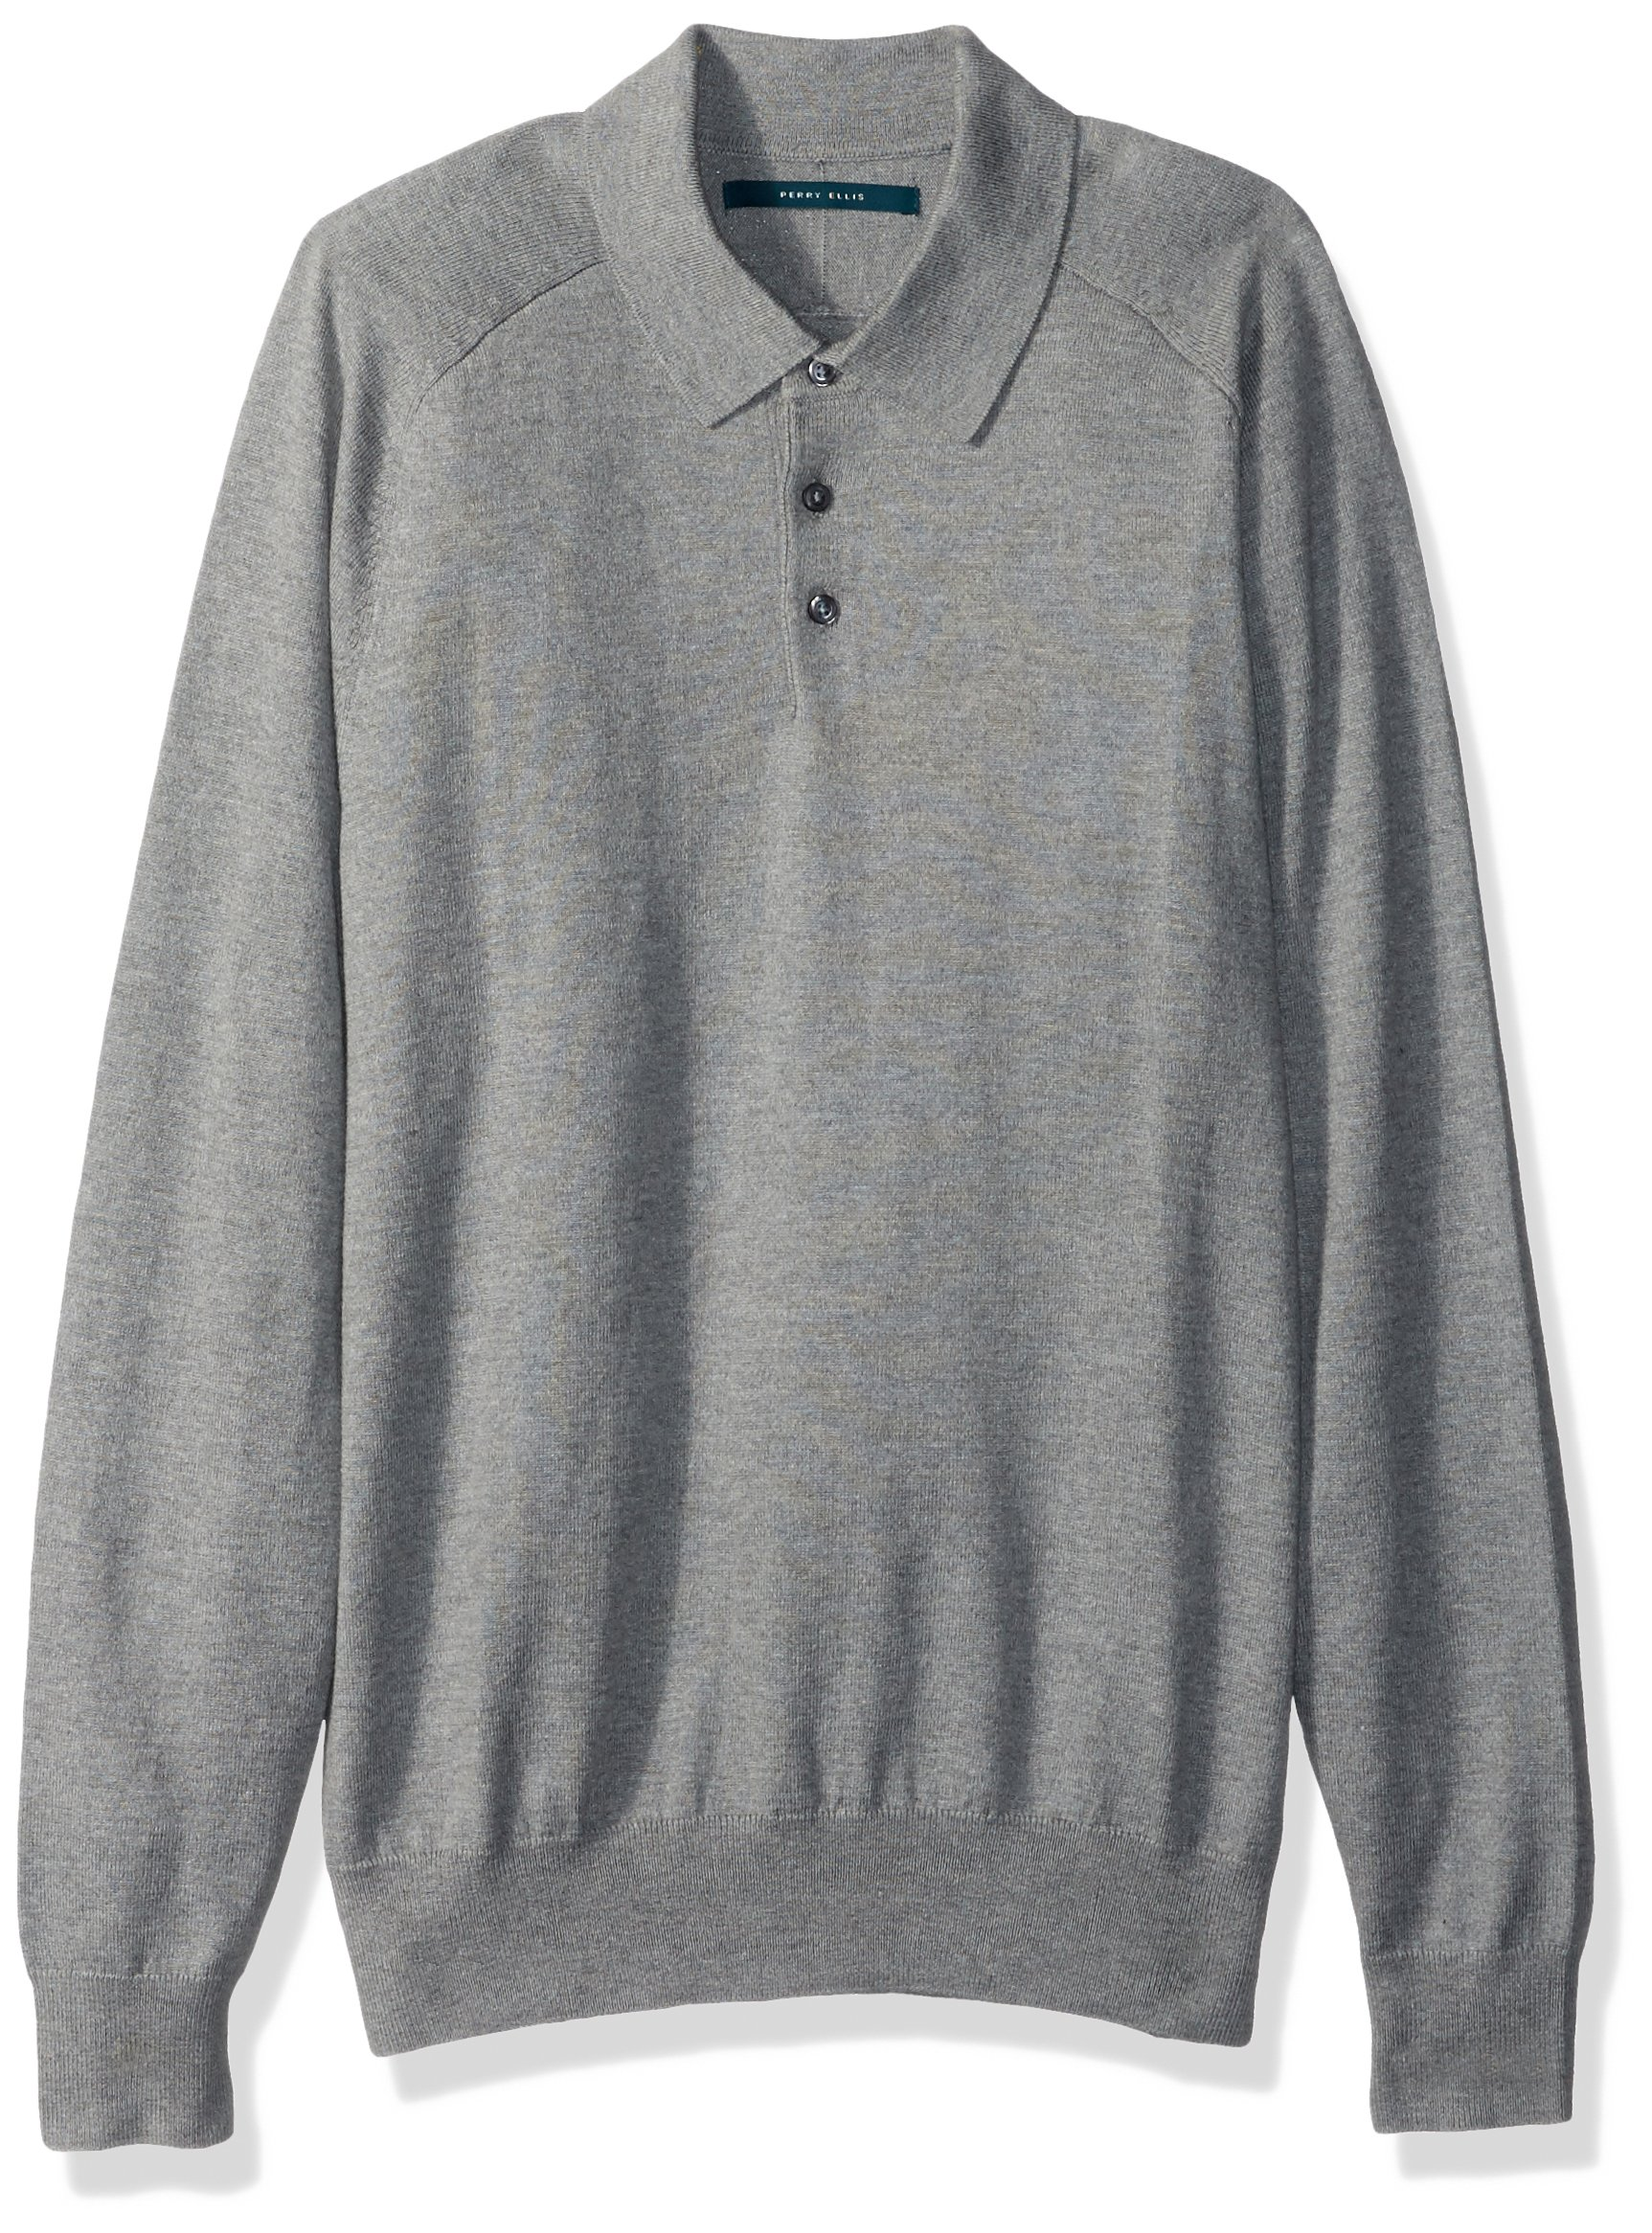 Perry Ellis Men's Solid Polo Sweater, Smoke Heather, Extra Large